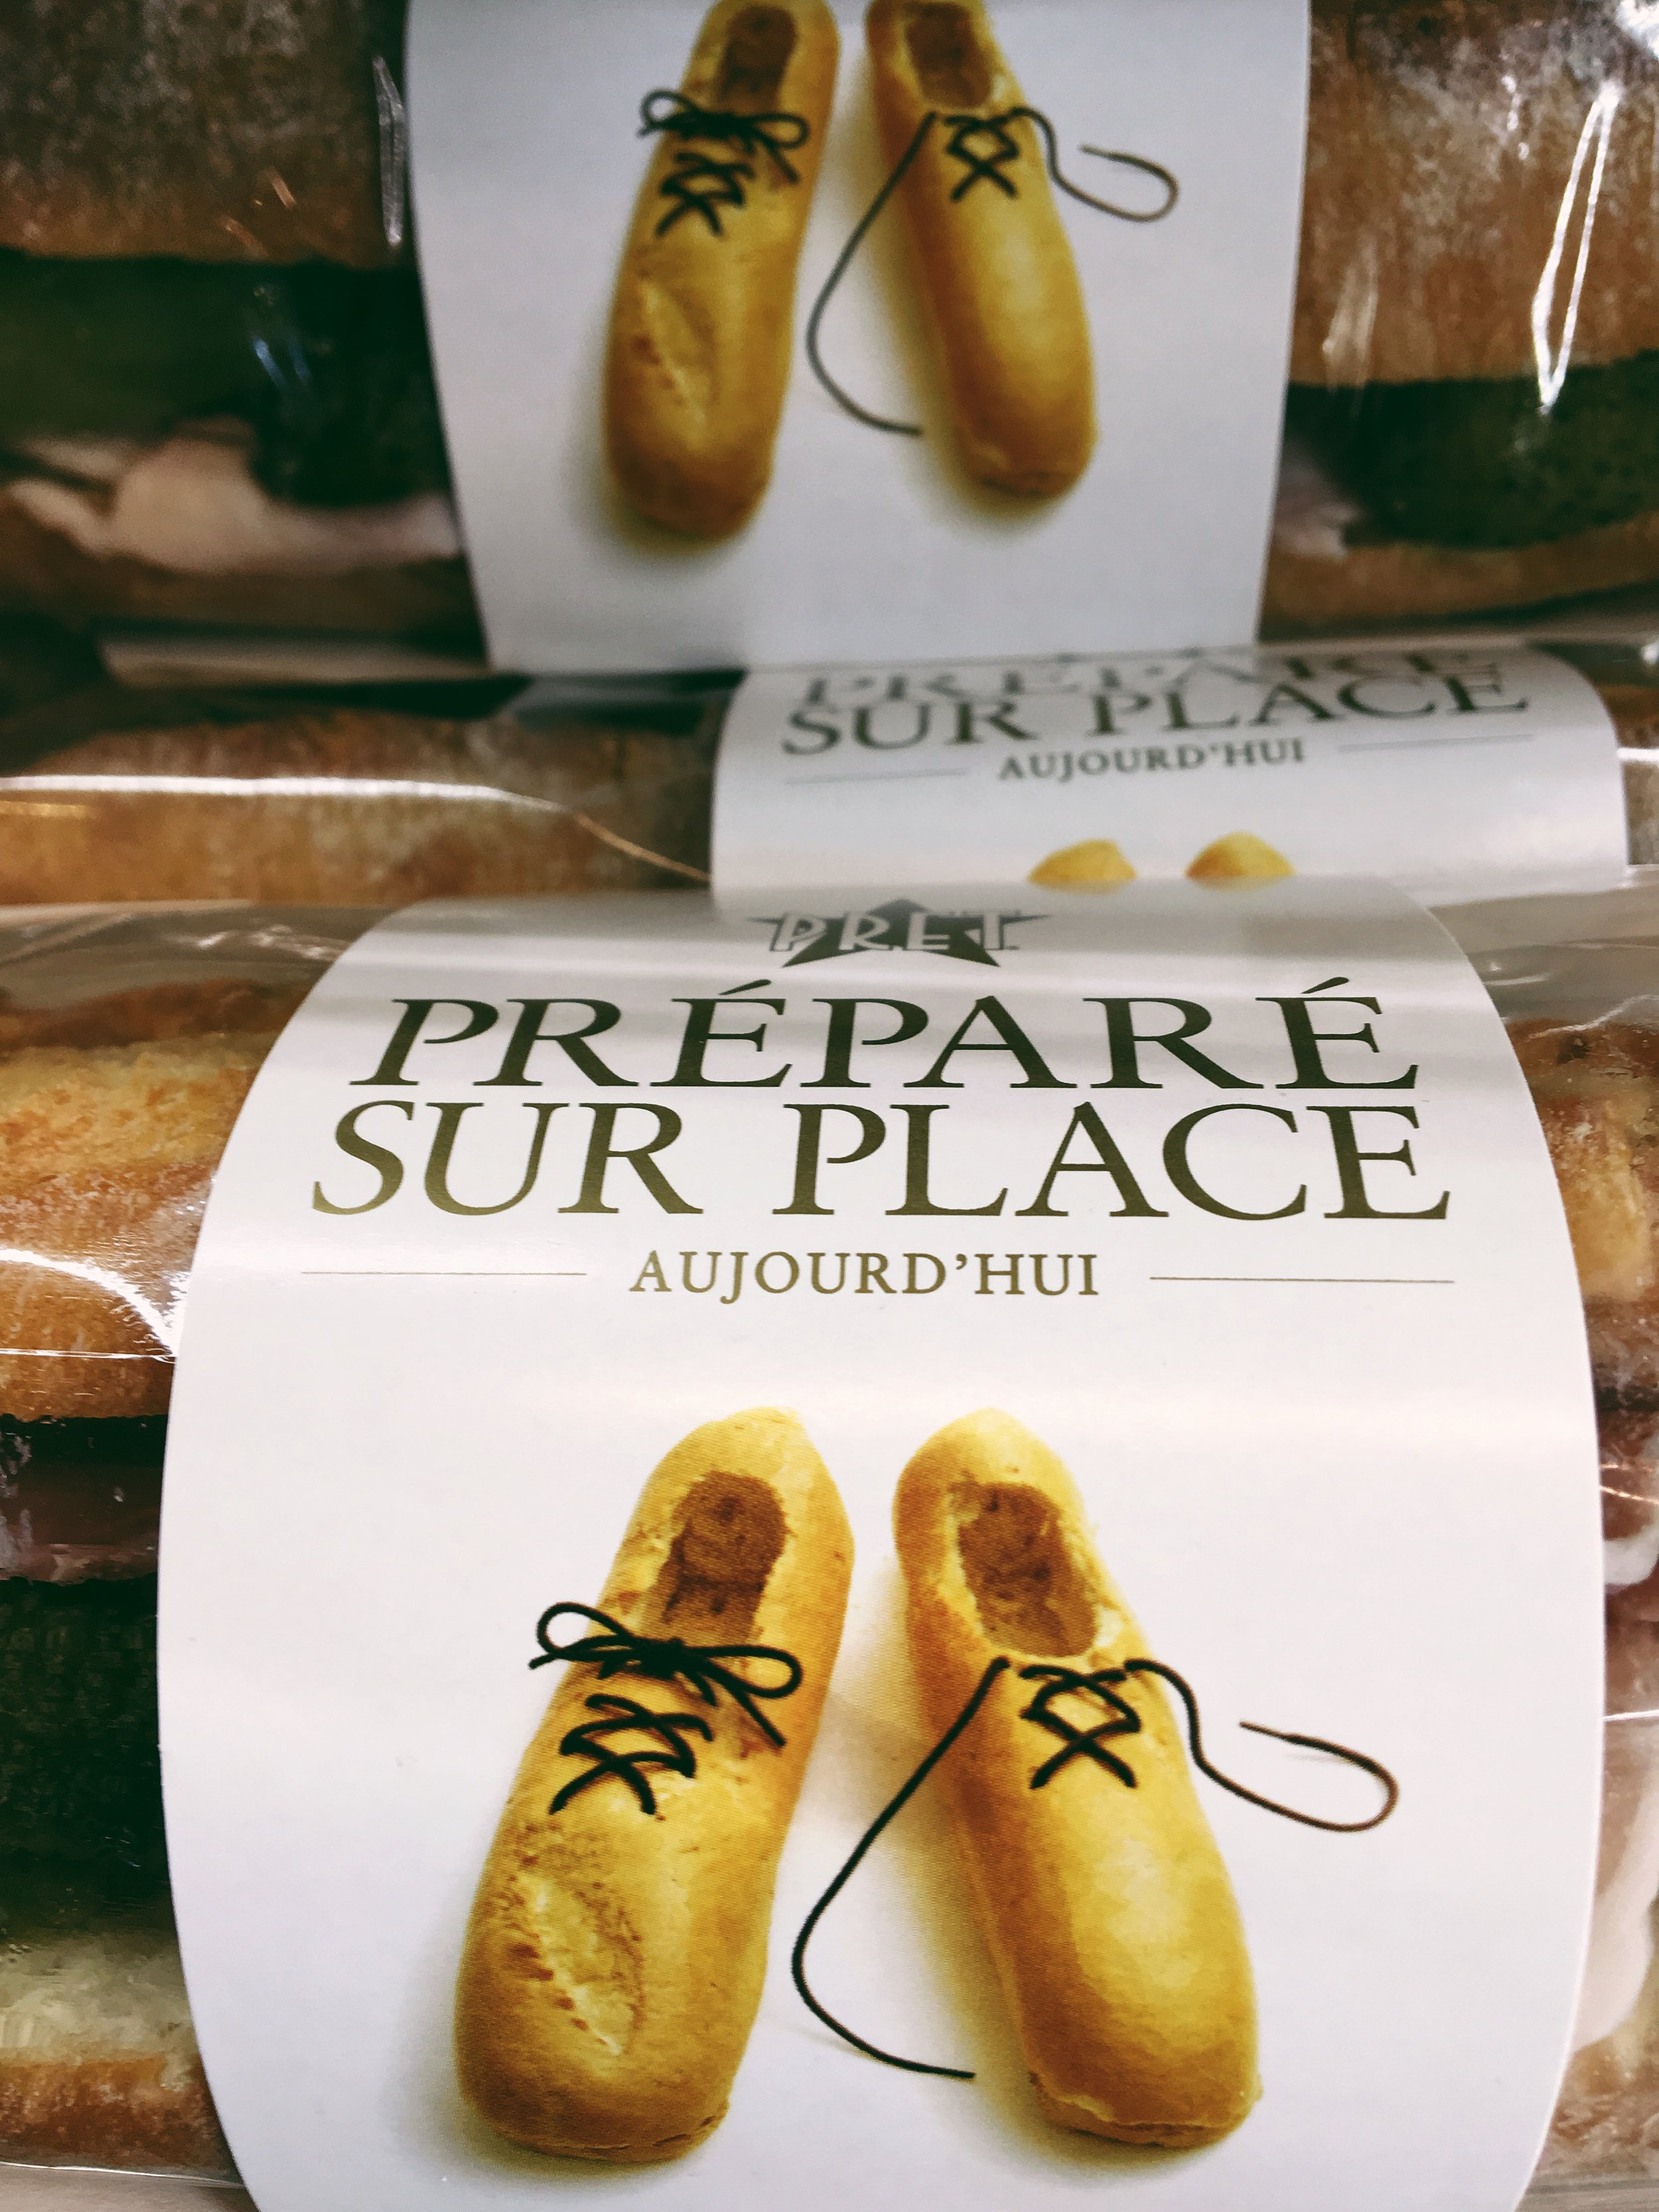 I couldn't not include this. Baguette shoes. The cleverness!